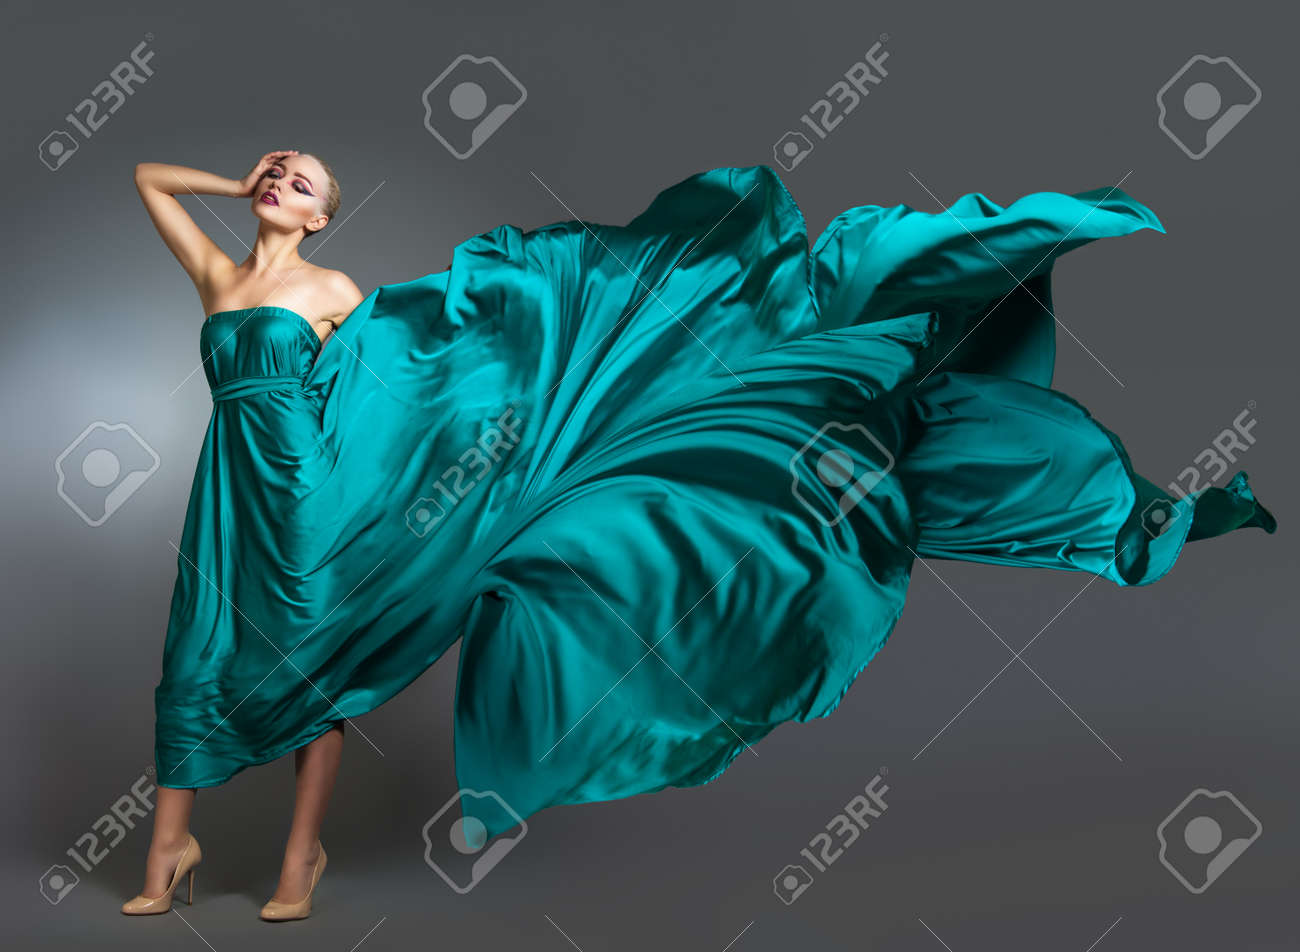 Woman in silk dress waving on wind. Flying and fluttering gown cloth over gray background Woman Dancing In Fashion Dress - 51333997